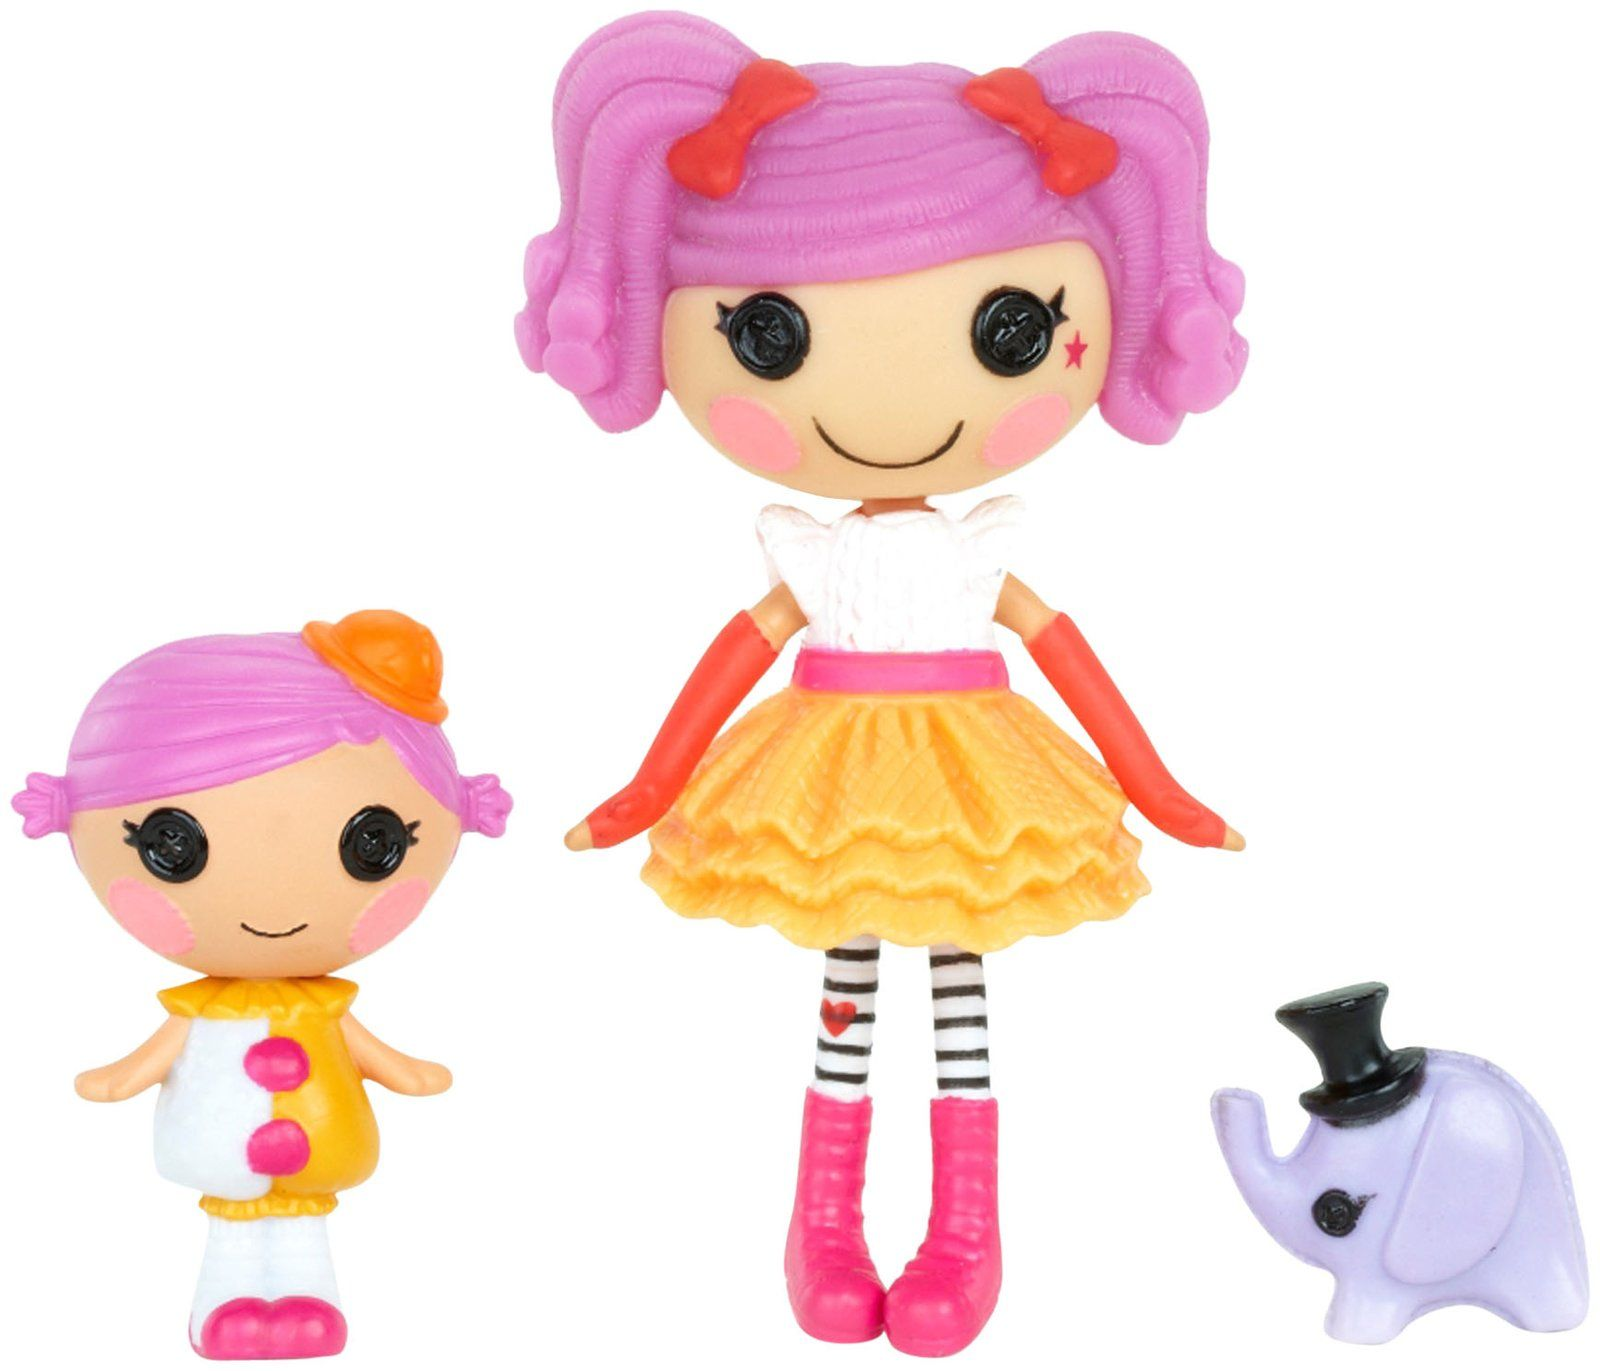 Lalaloopsy Dolls Shop For Other Mini Lalaloopsy Products